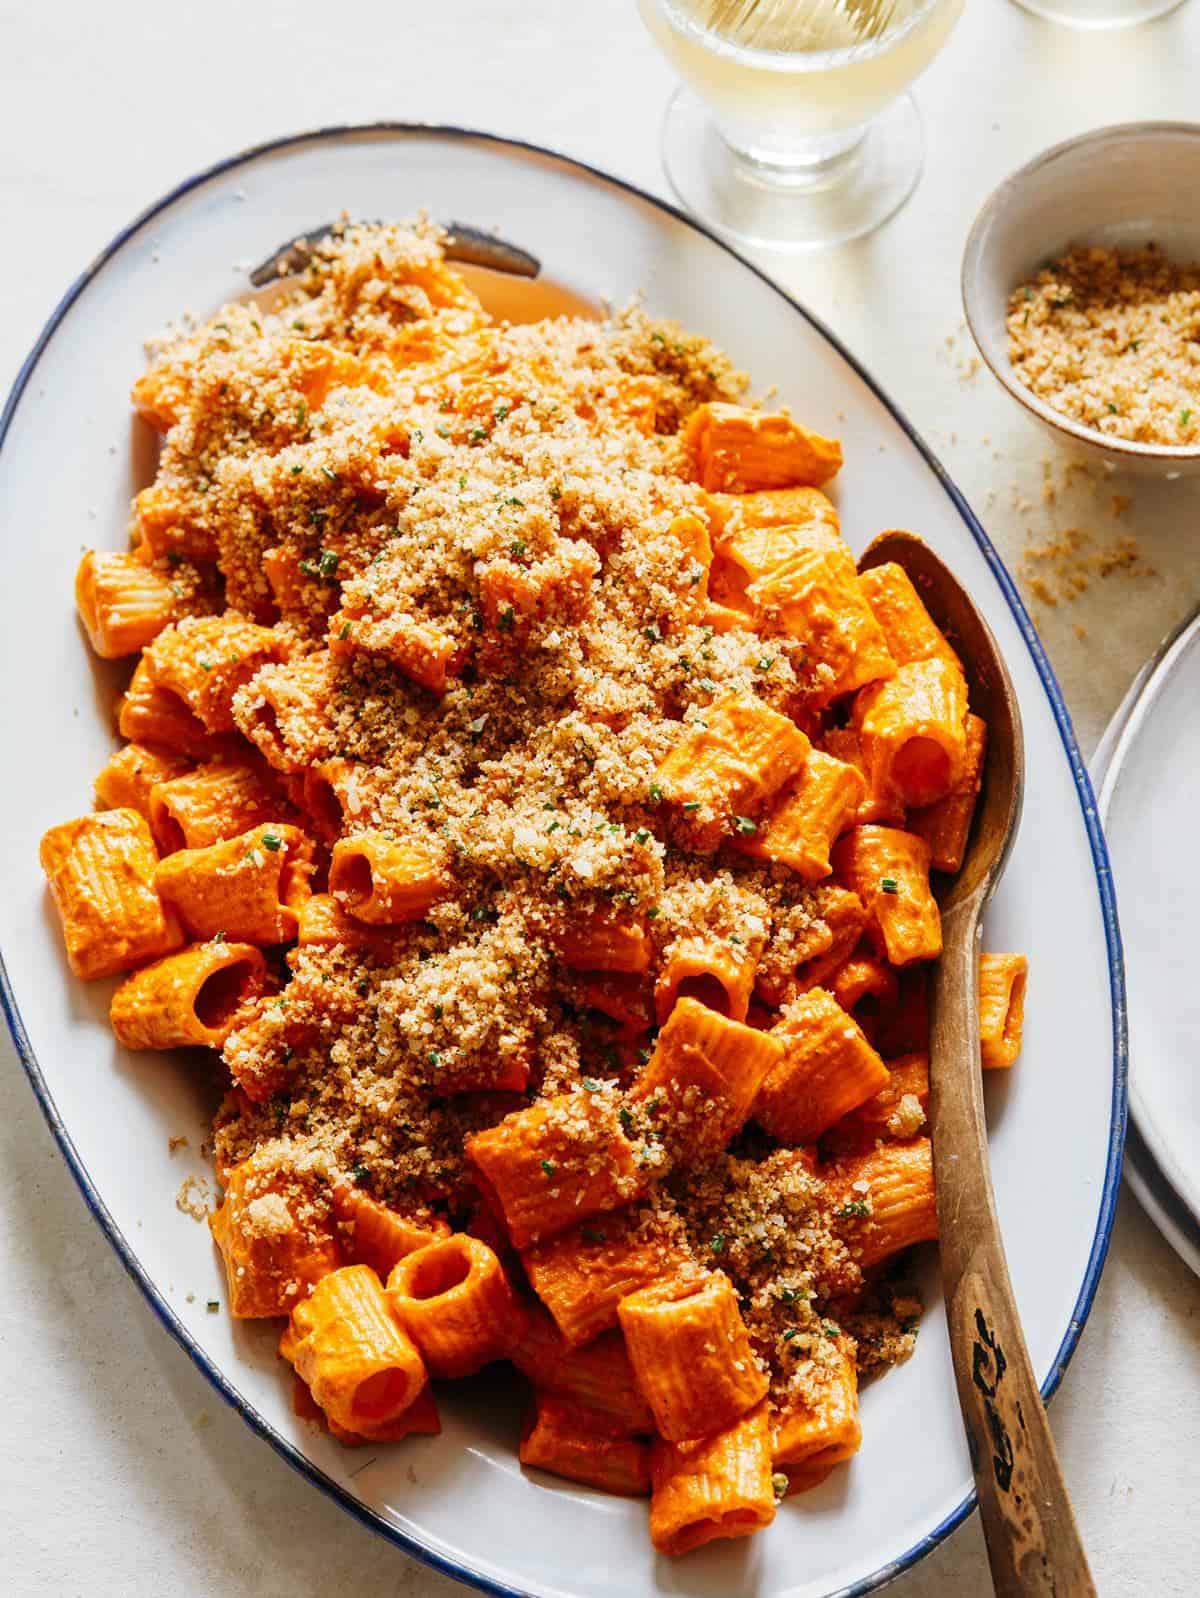 Romesco sauce rigatoni topped with breadcrumbs on a platter with a spoon.